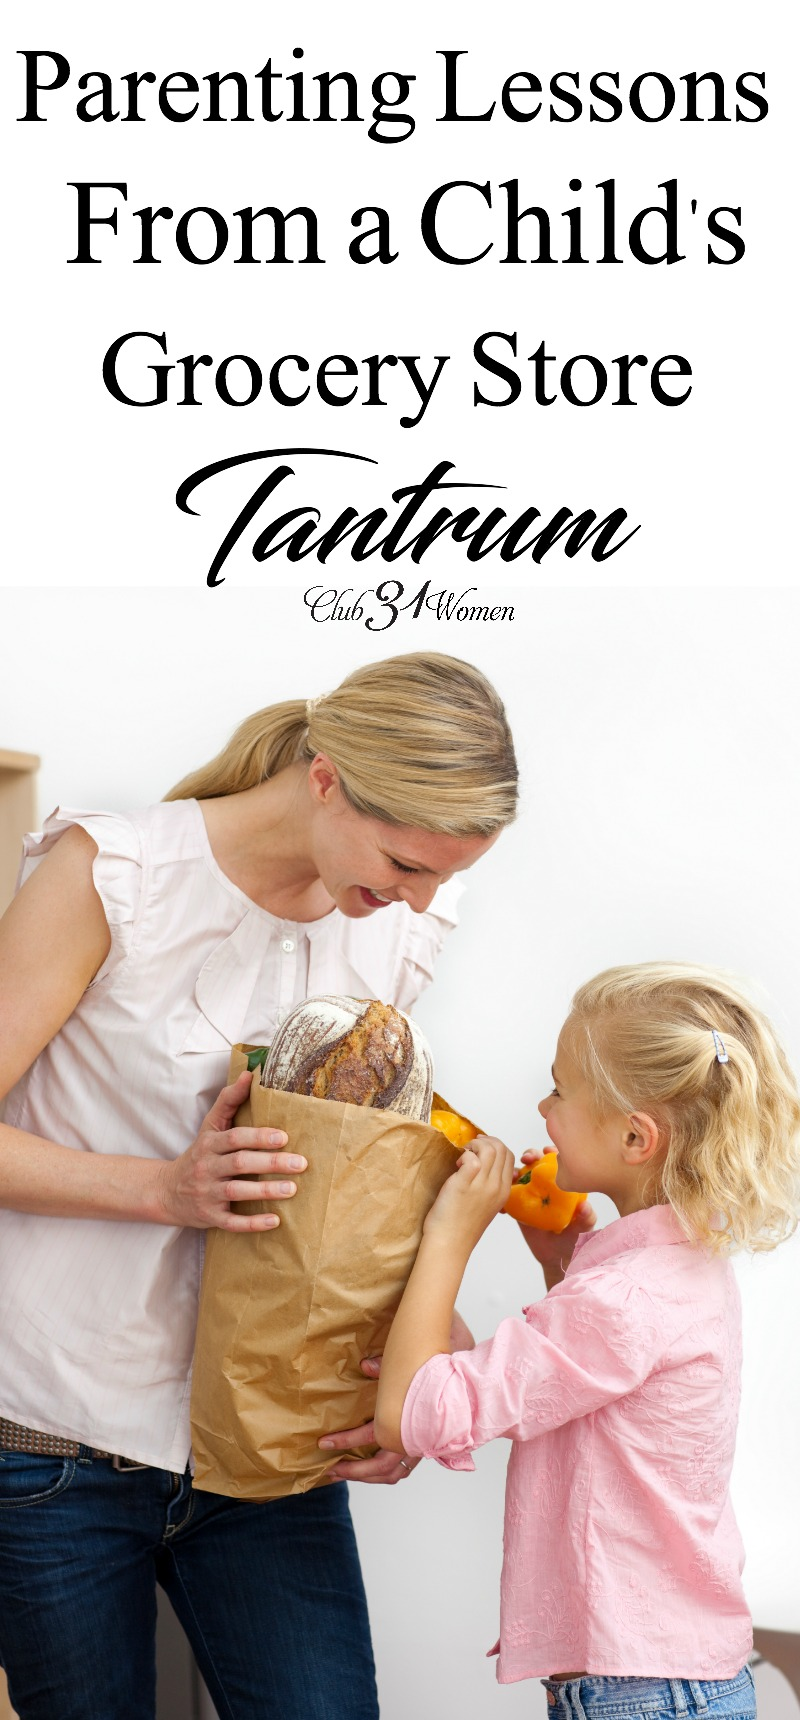 What can you do to prevent that grocery store tantrum in the middle of your shopping trip? A simple adjustment can make for a peaceful trip for all! via @Club31Women